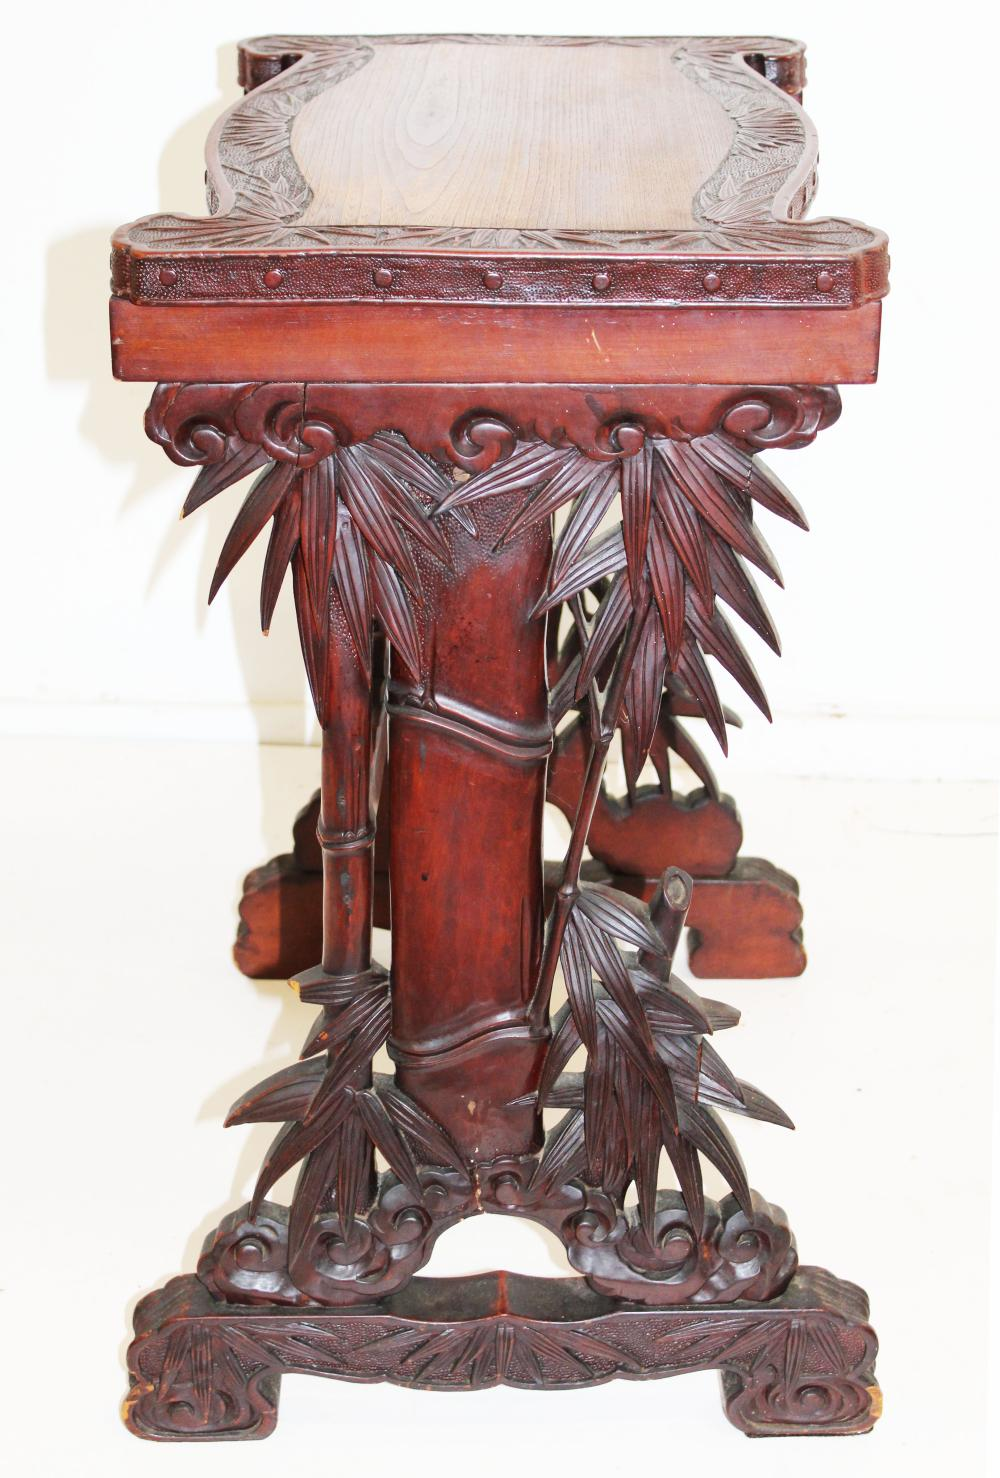 Arts & Crafts era carved writing stand